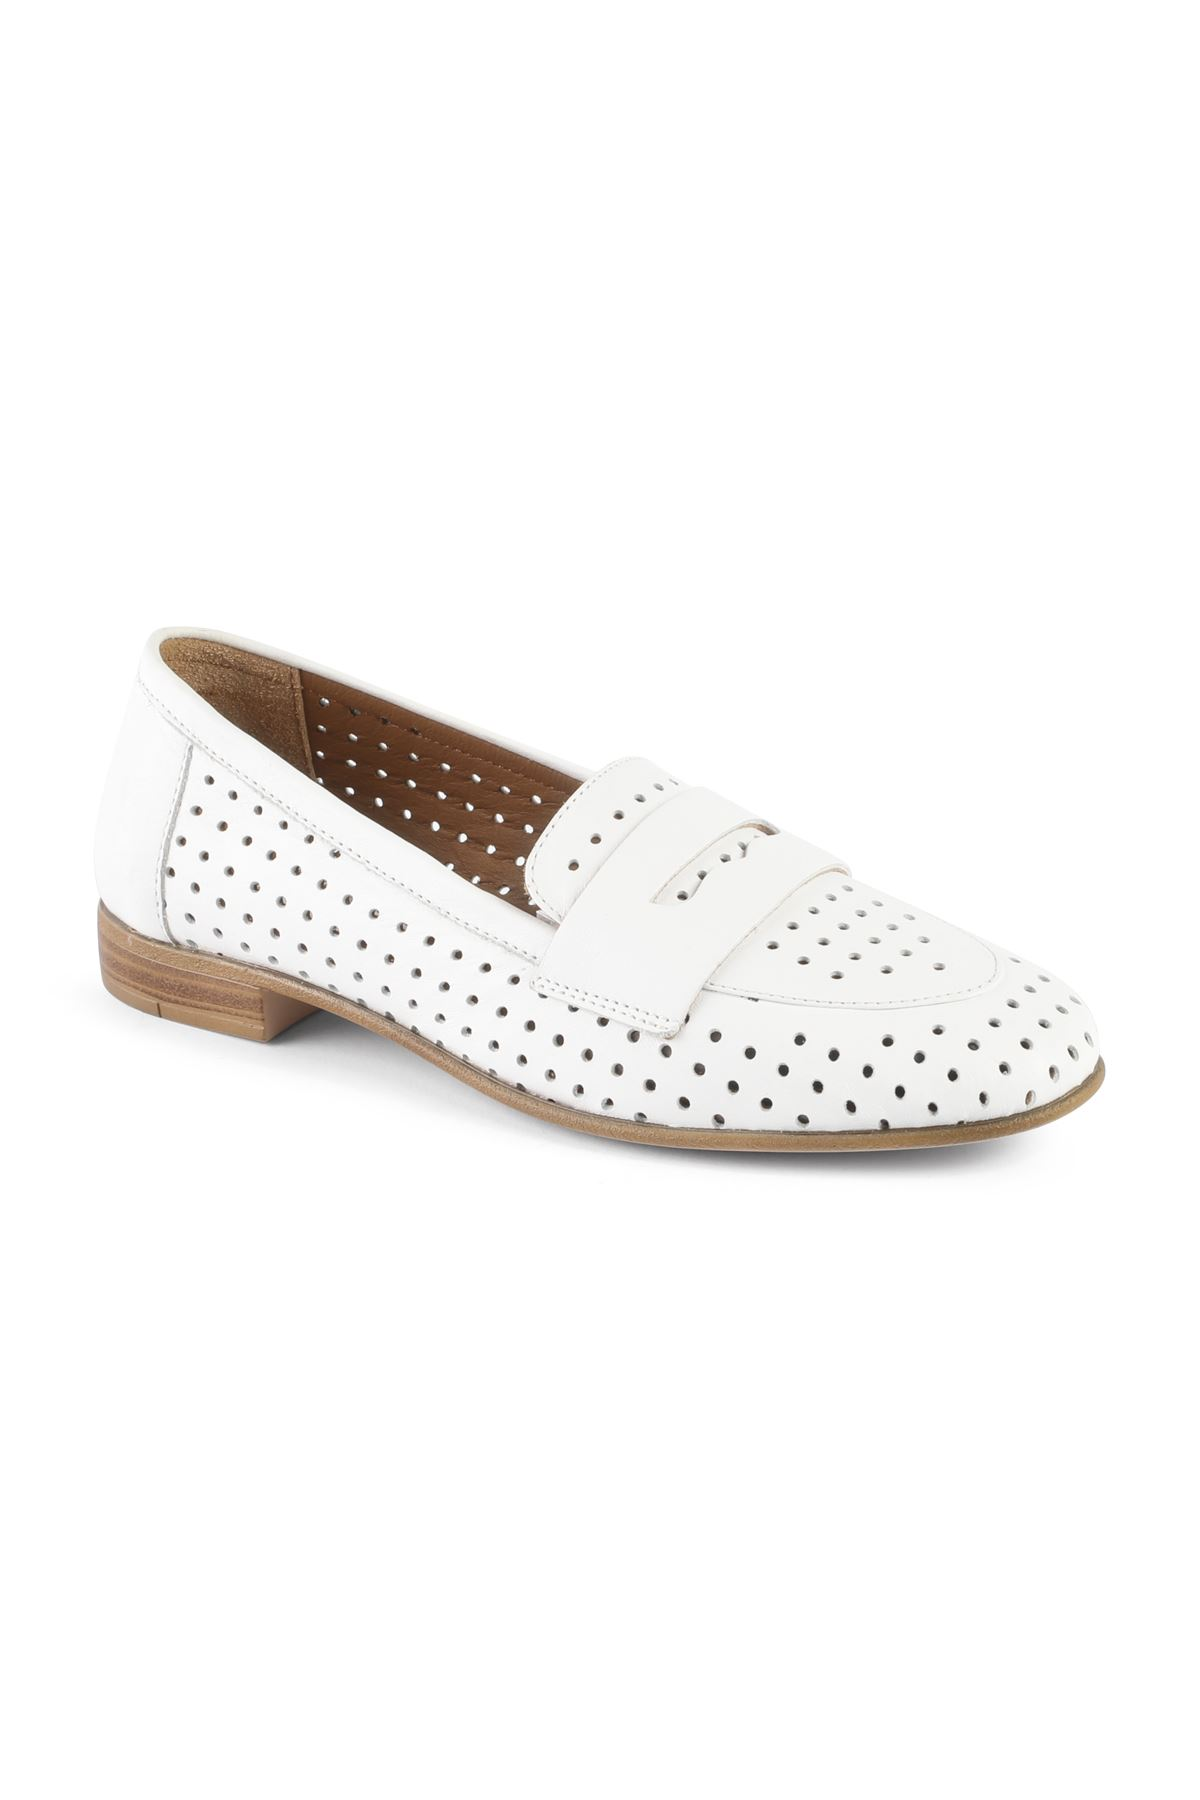 Libero MS2200 White Babette Shoes